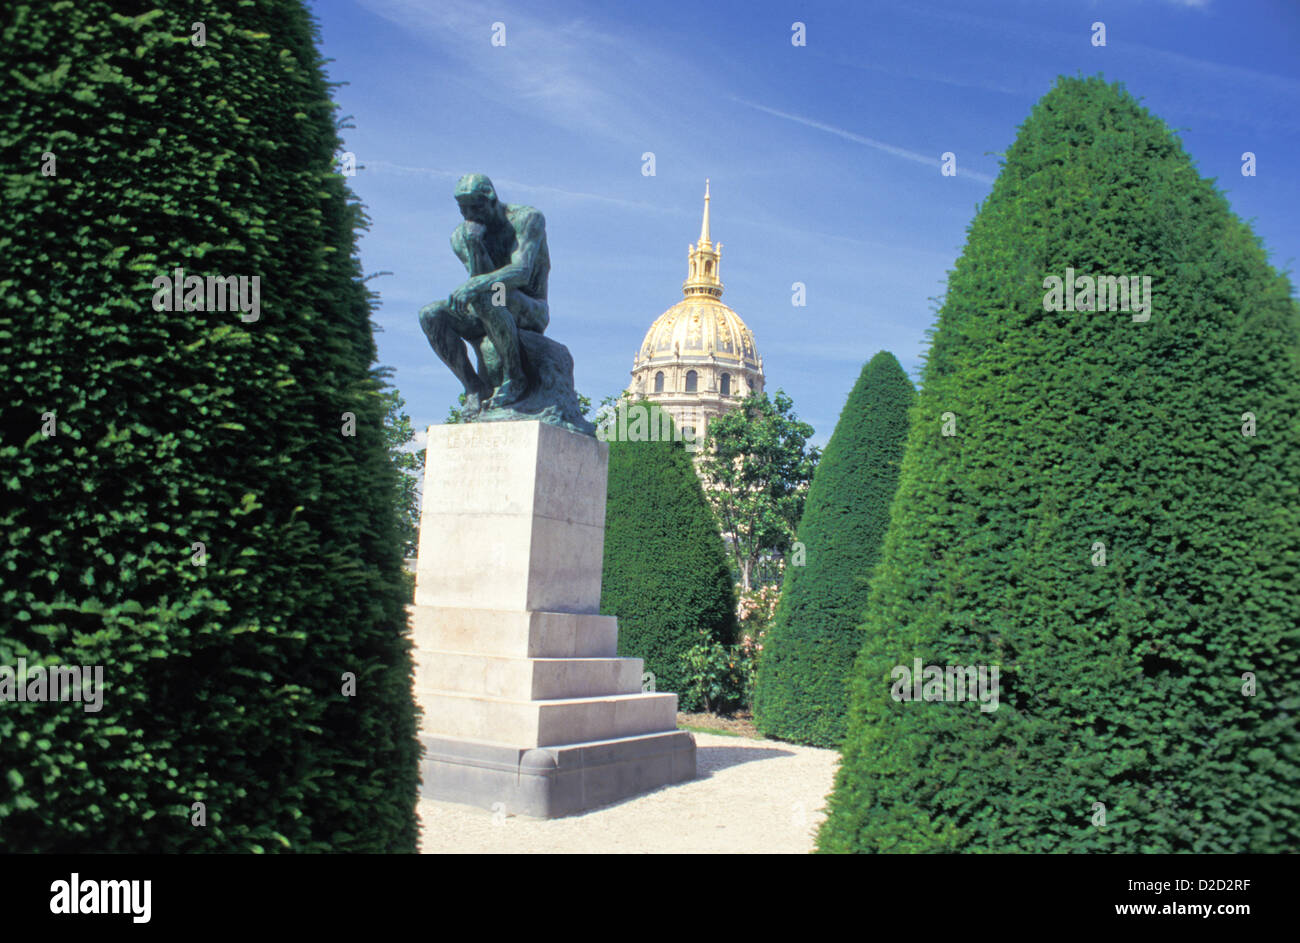 France, Paris. Rodin Museum. The Thinker, With The Invalides' Dome Church Behind. - Stock Image